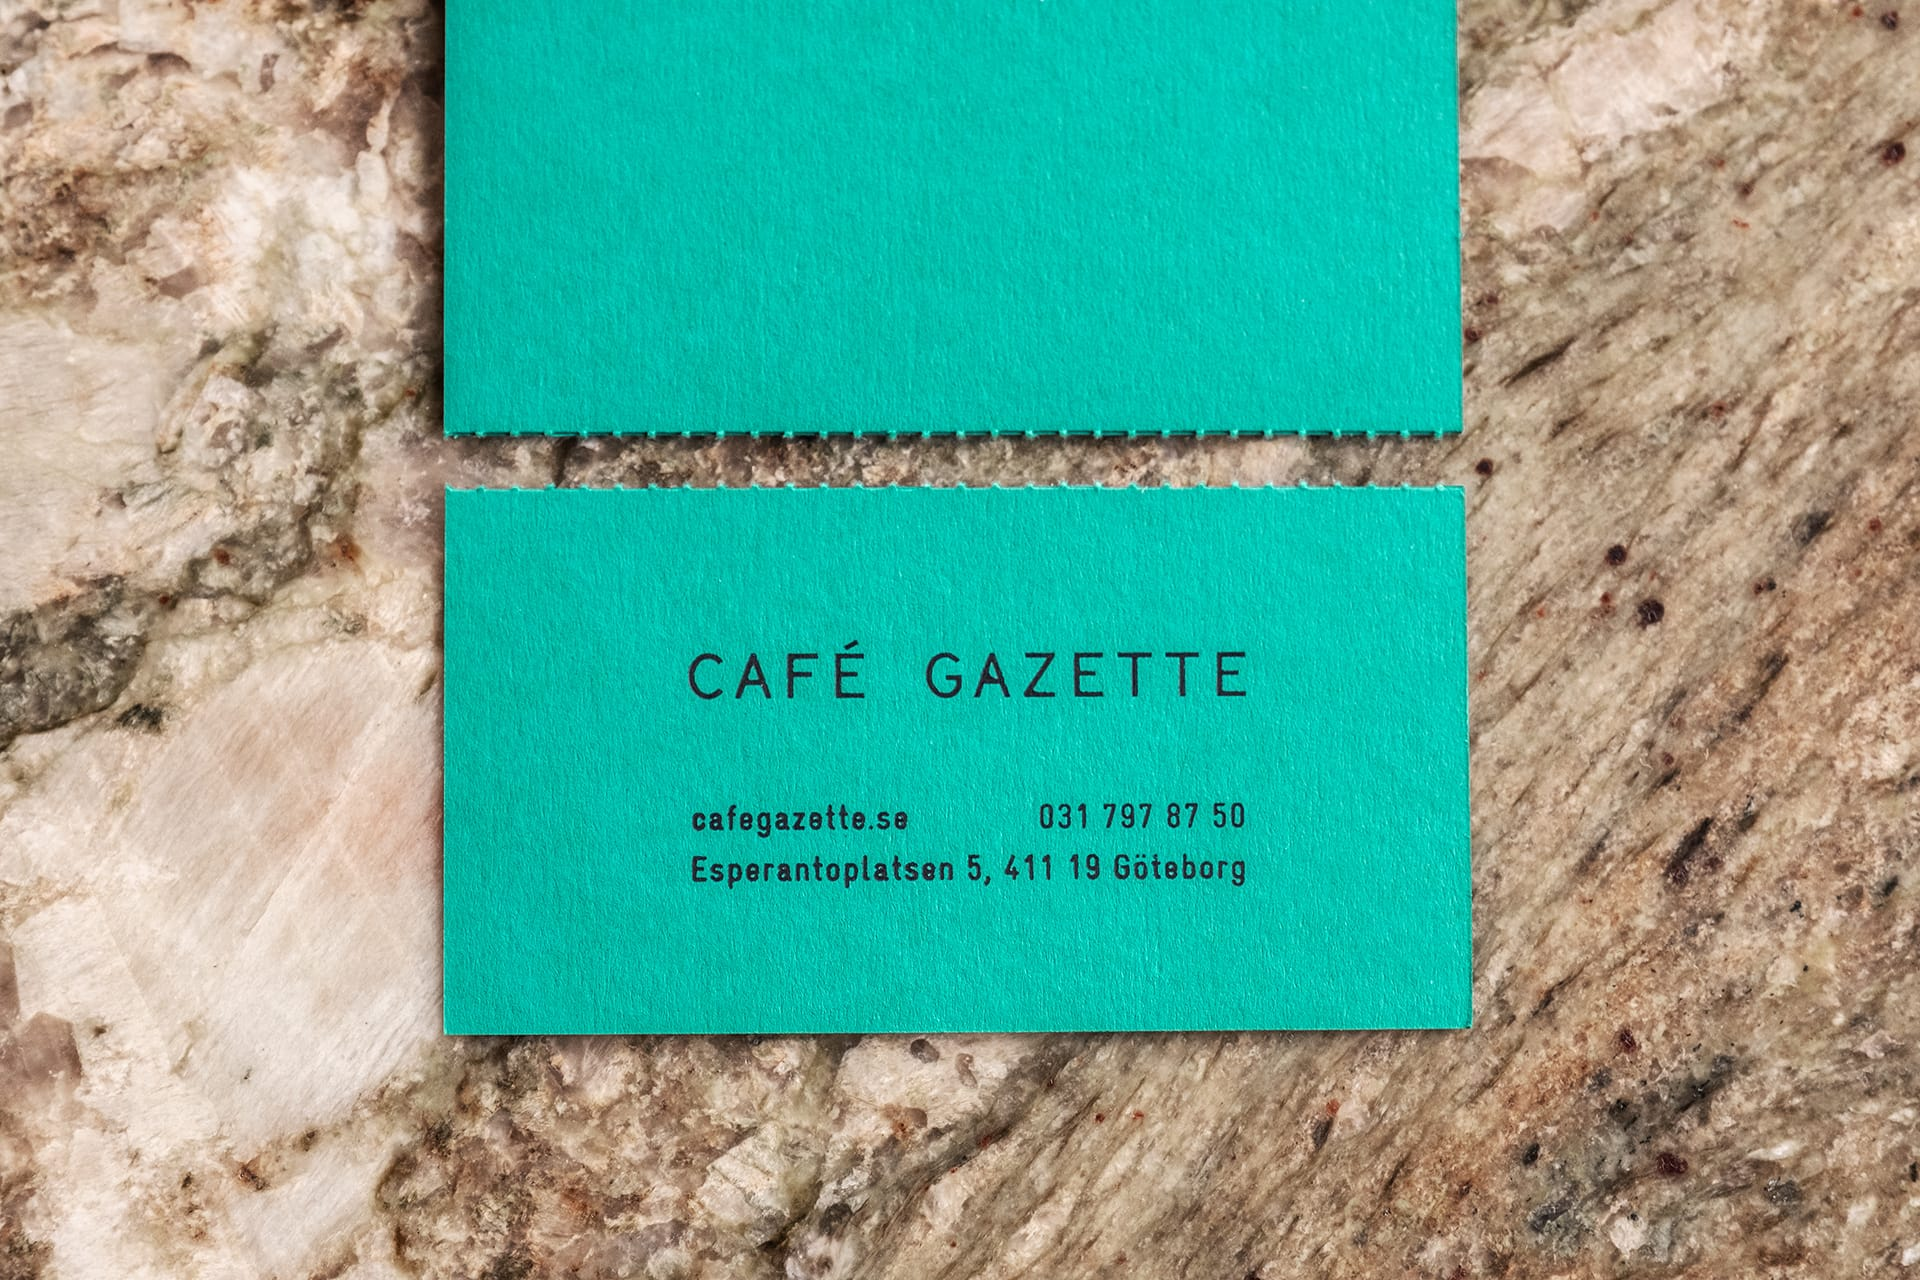 Cafe_Gazette_Grafisk_Design_mnecander-06